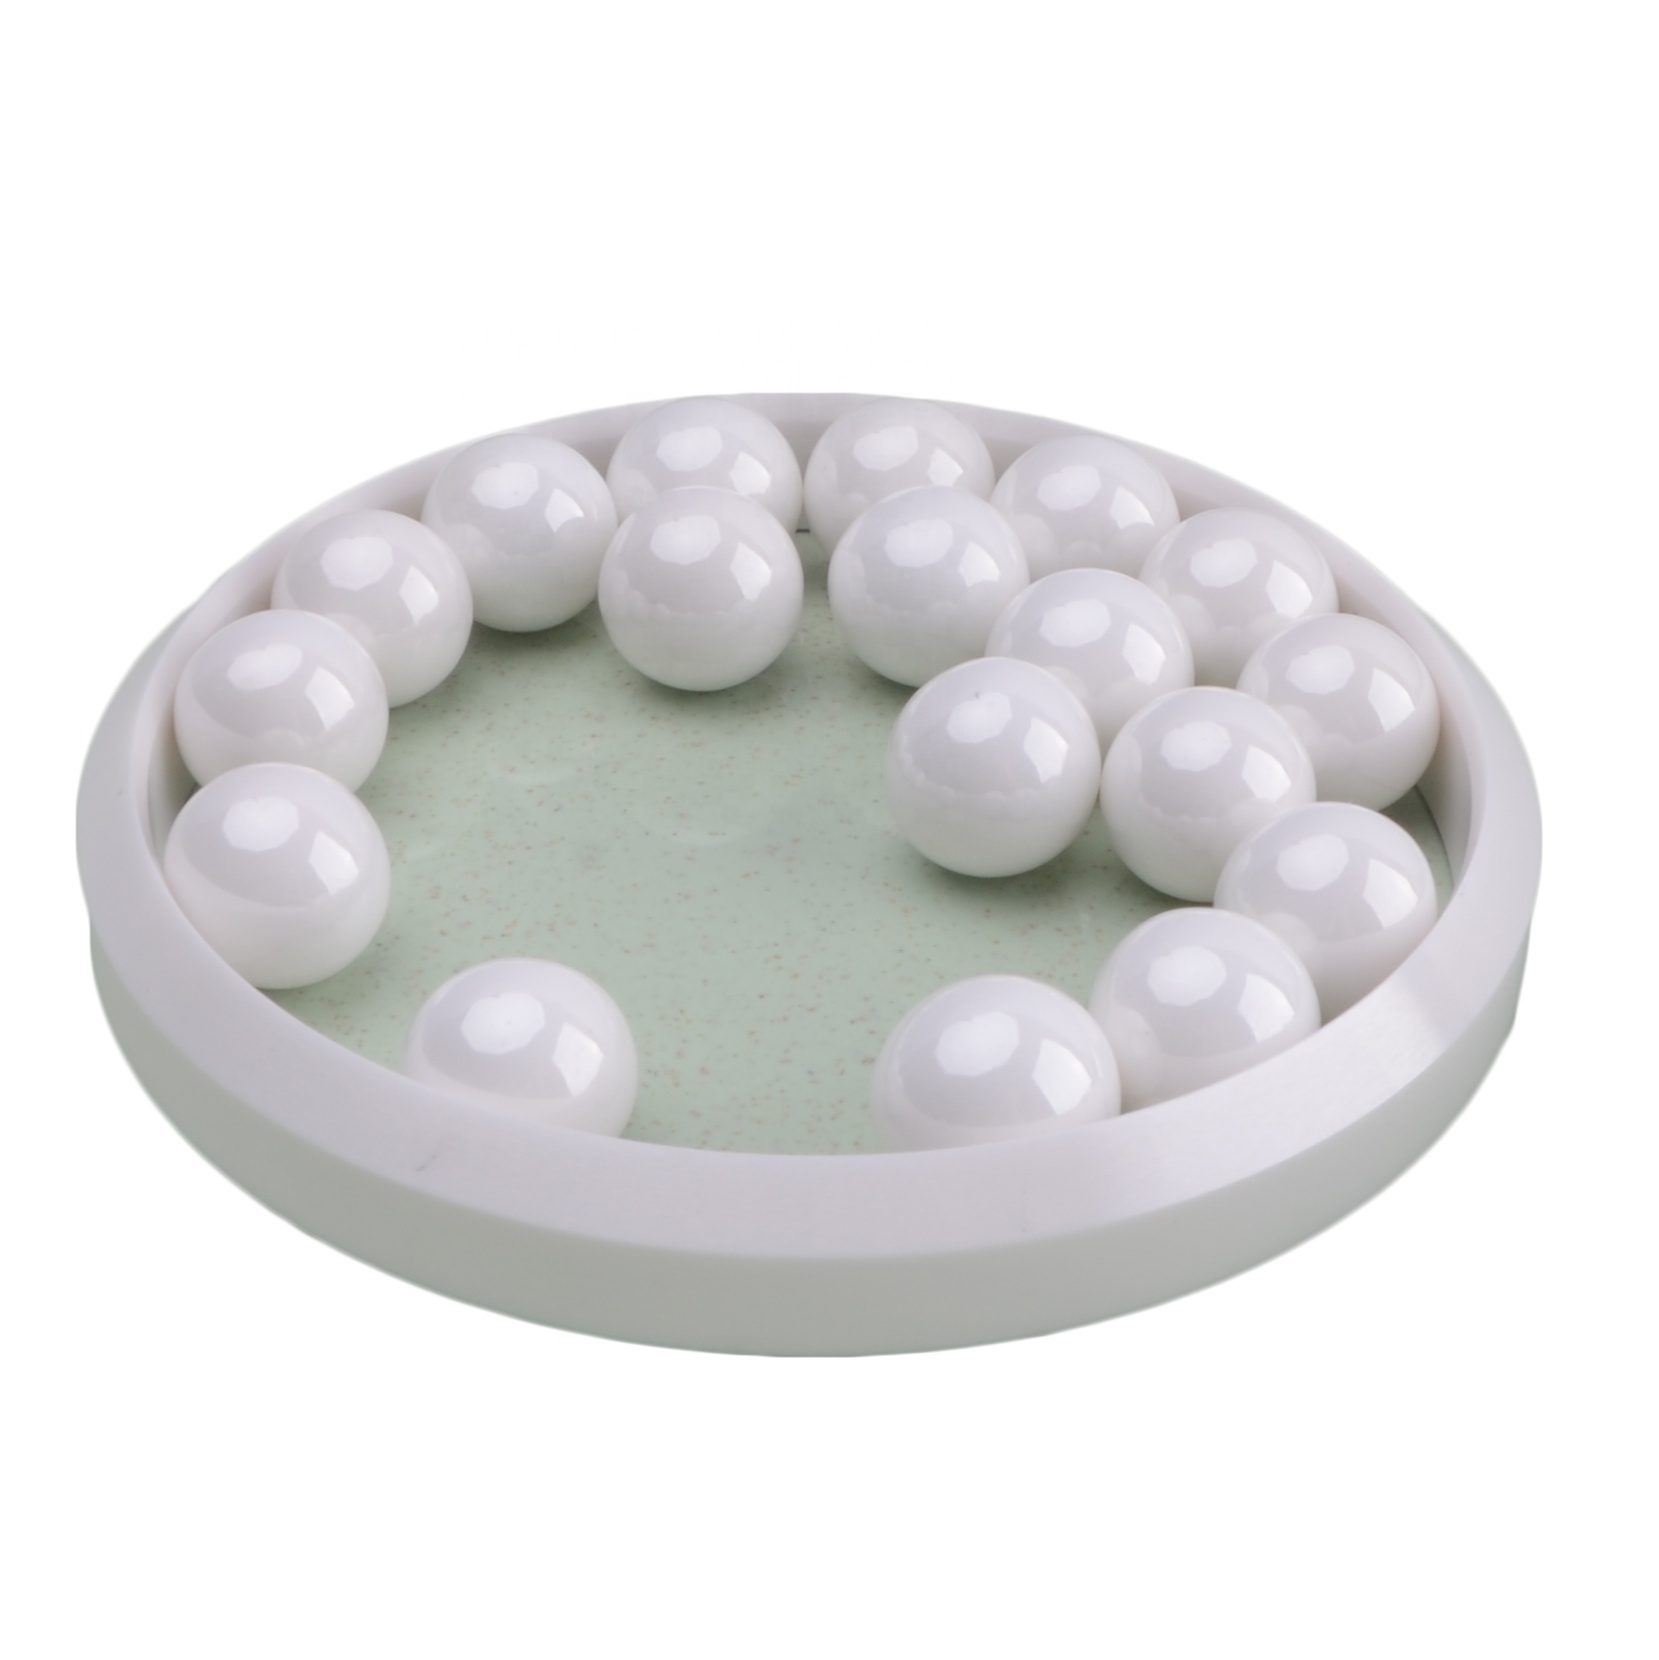 0.8-50mm sintered zirconium bead for wet and dry grinding